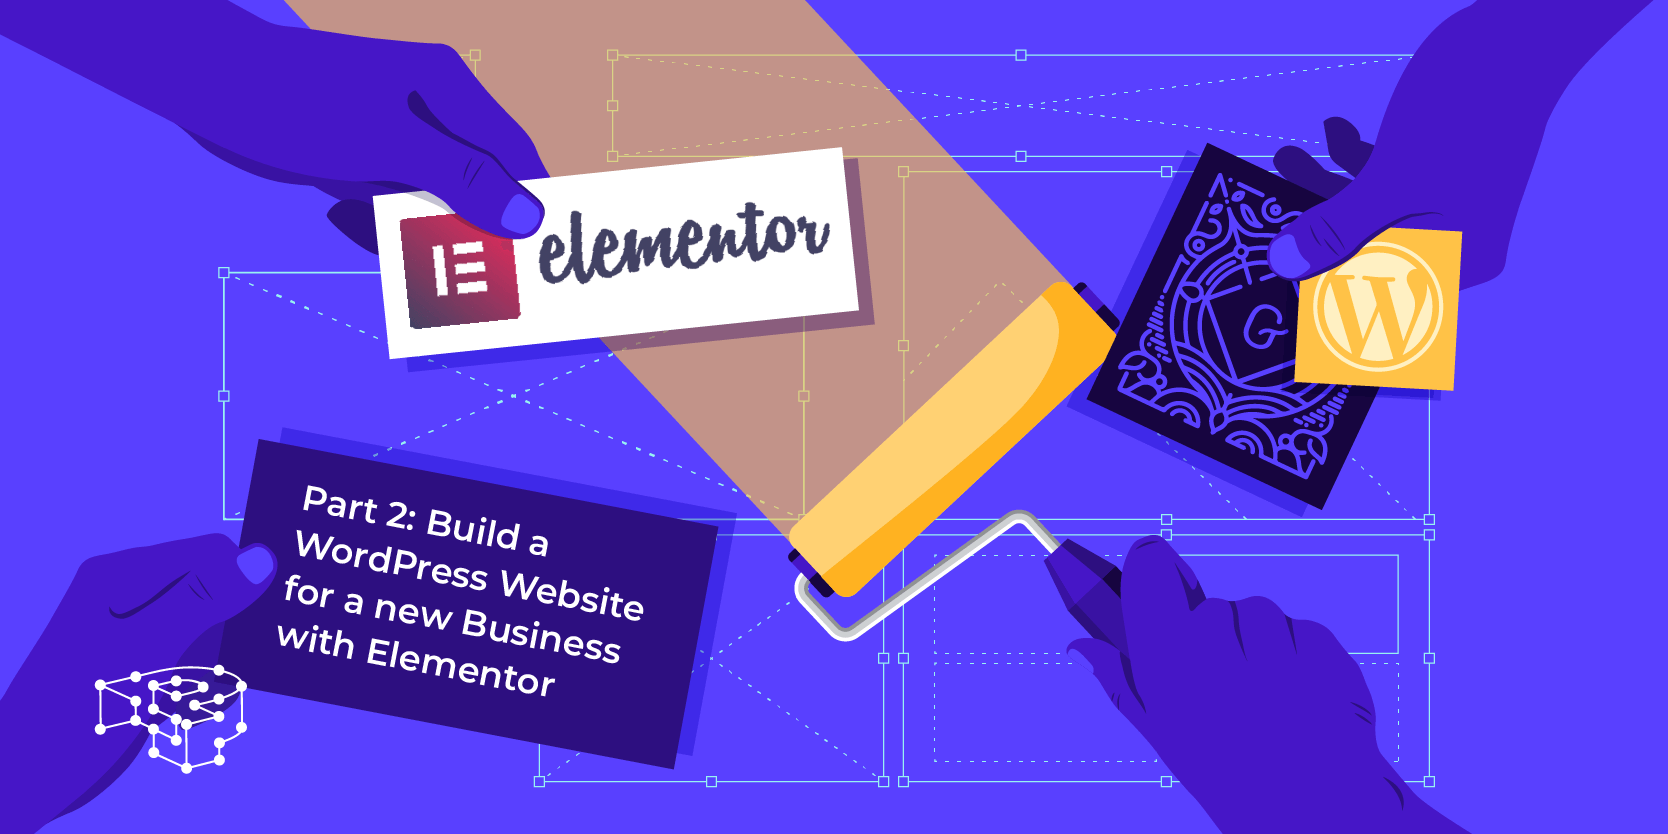 Image for Part 2: Build a WordPress Website for a new Business with Elementor